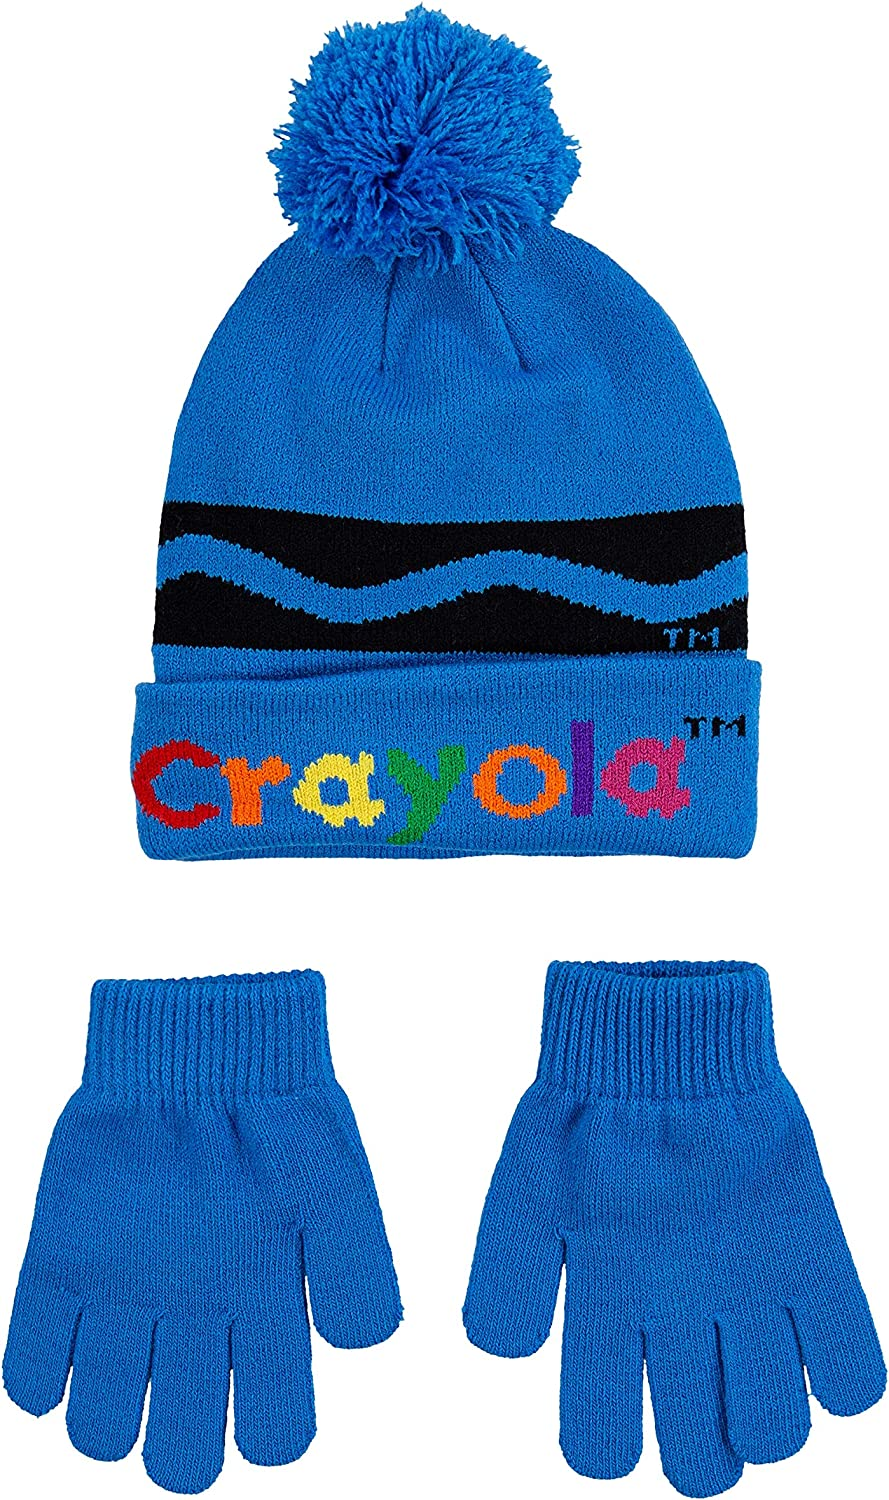 Crayola Childrens Apparel Kids Little Soft Knit Beanie Hat and Gloves 2-Piece Set One Size Blue